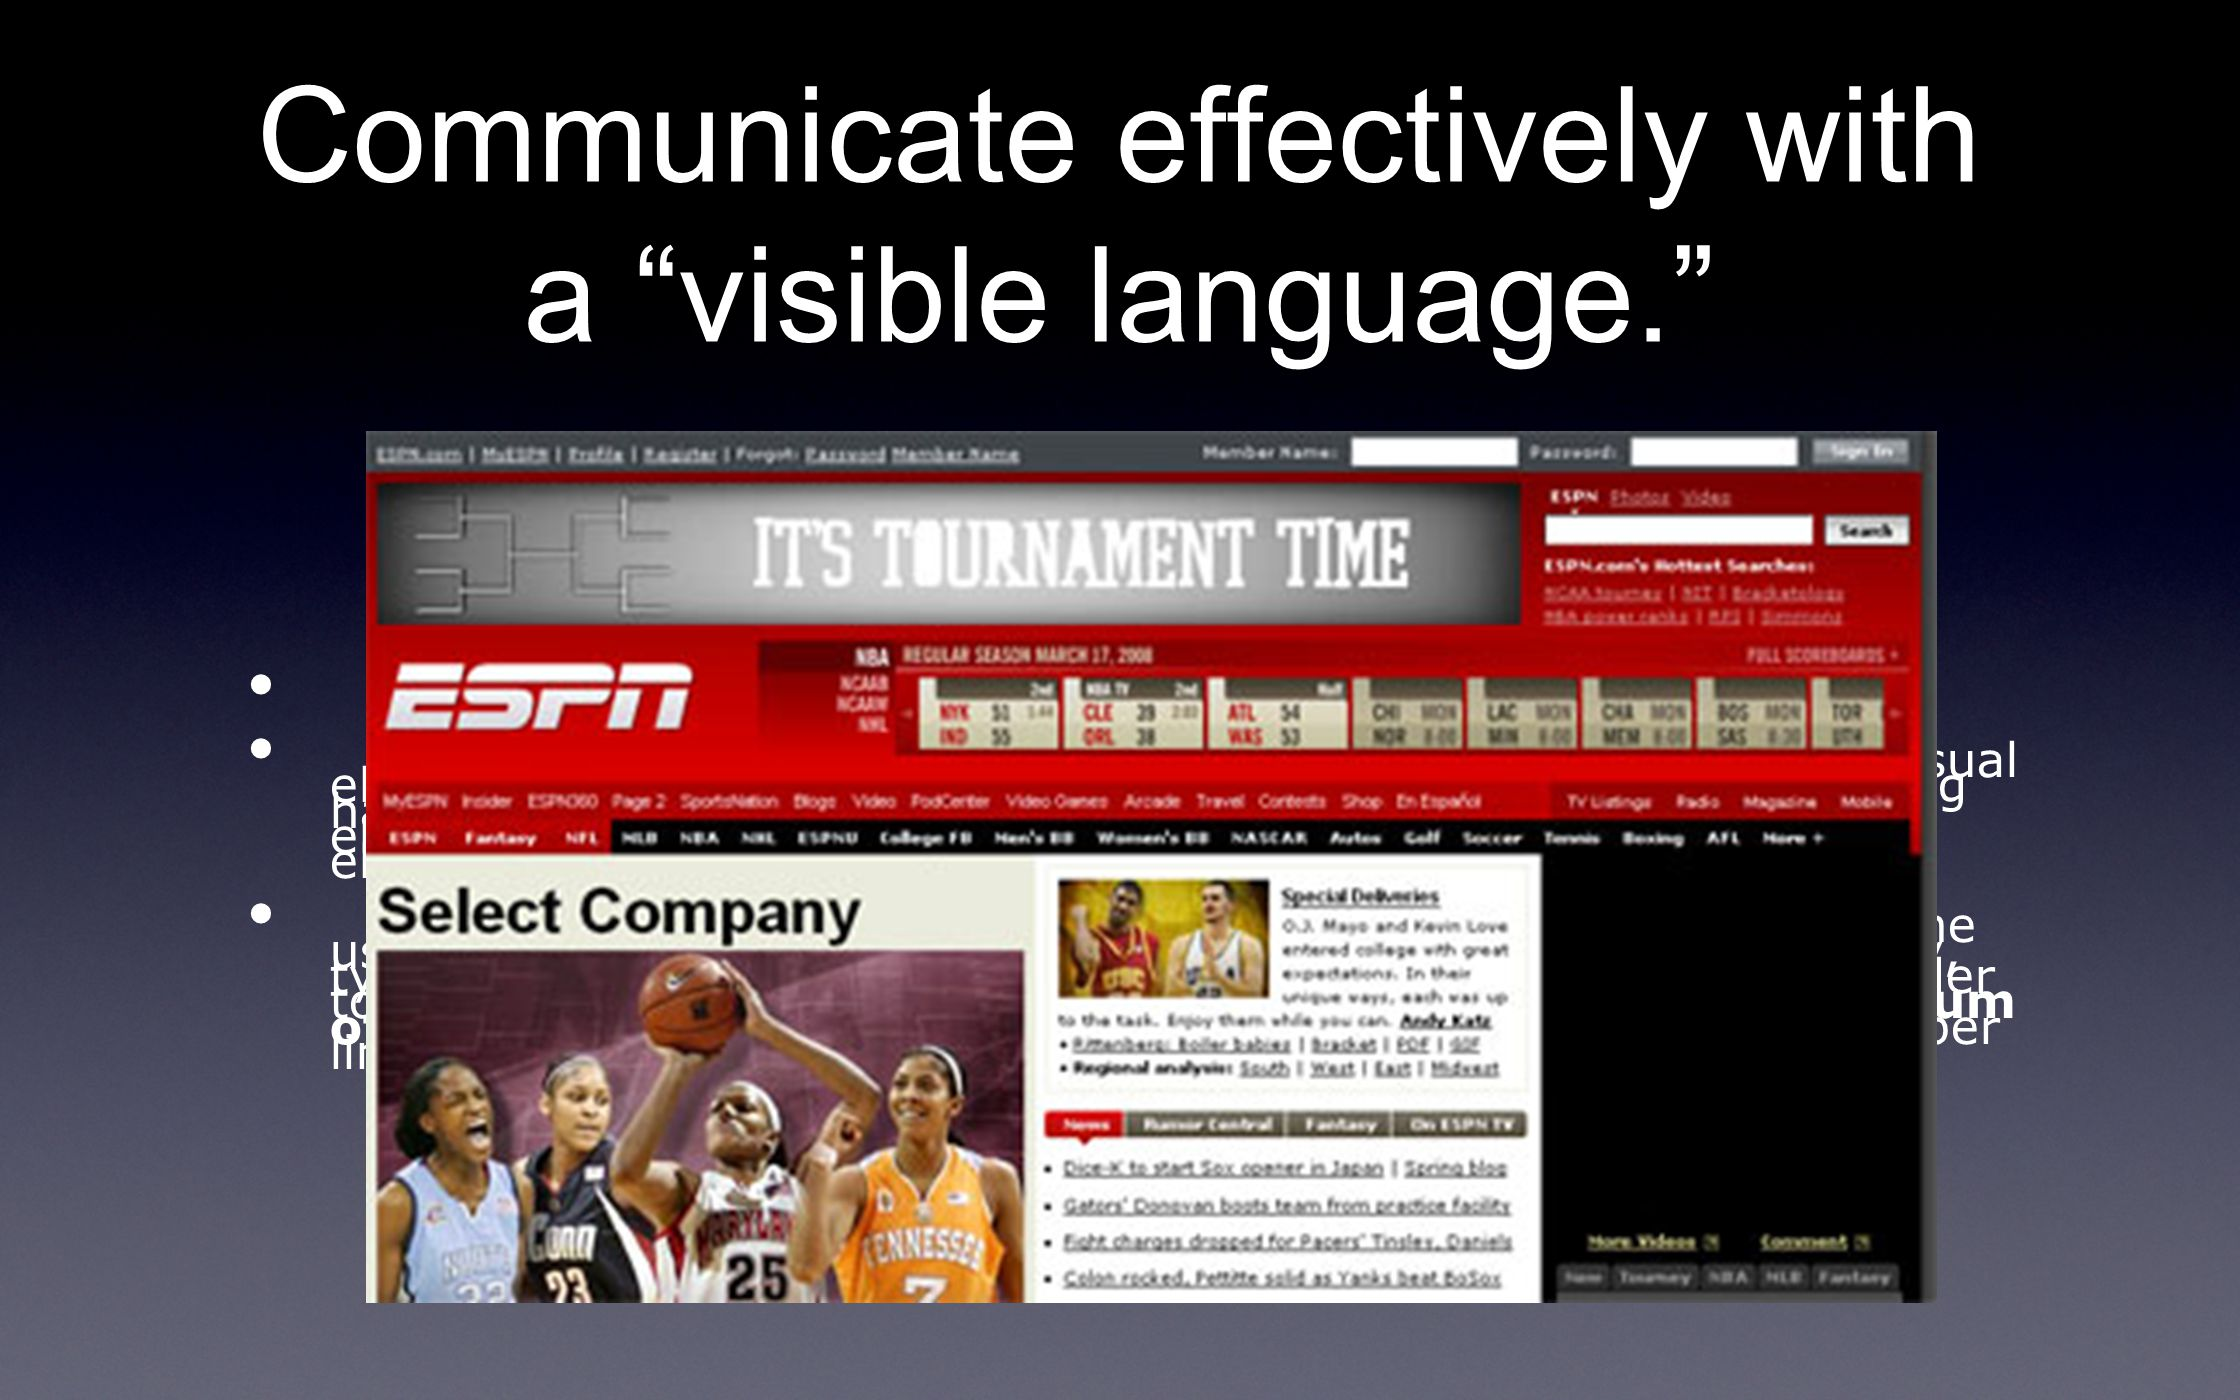 Communicate effectively with a visible language.